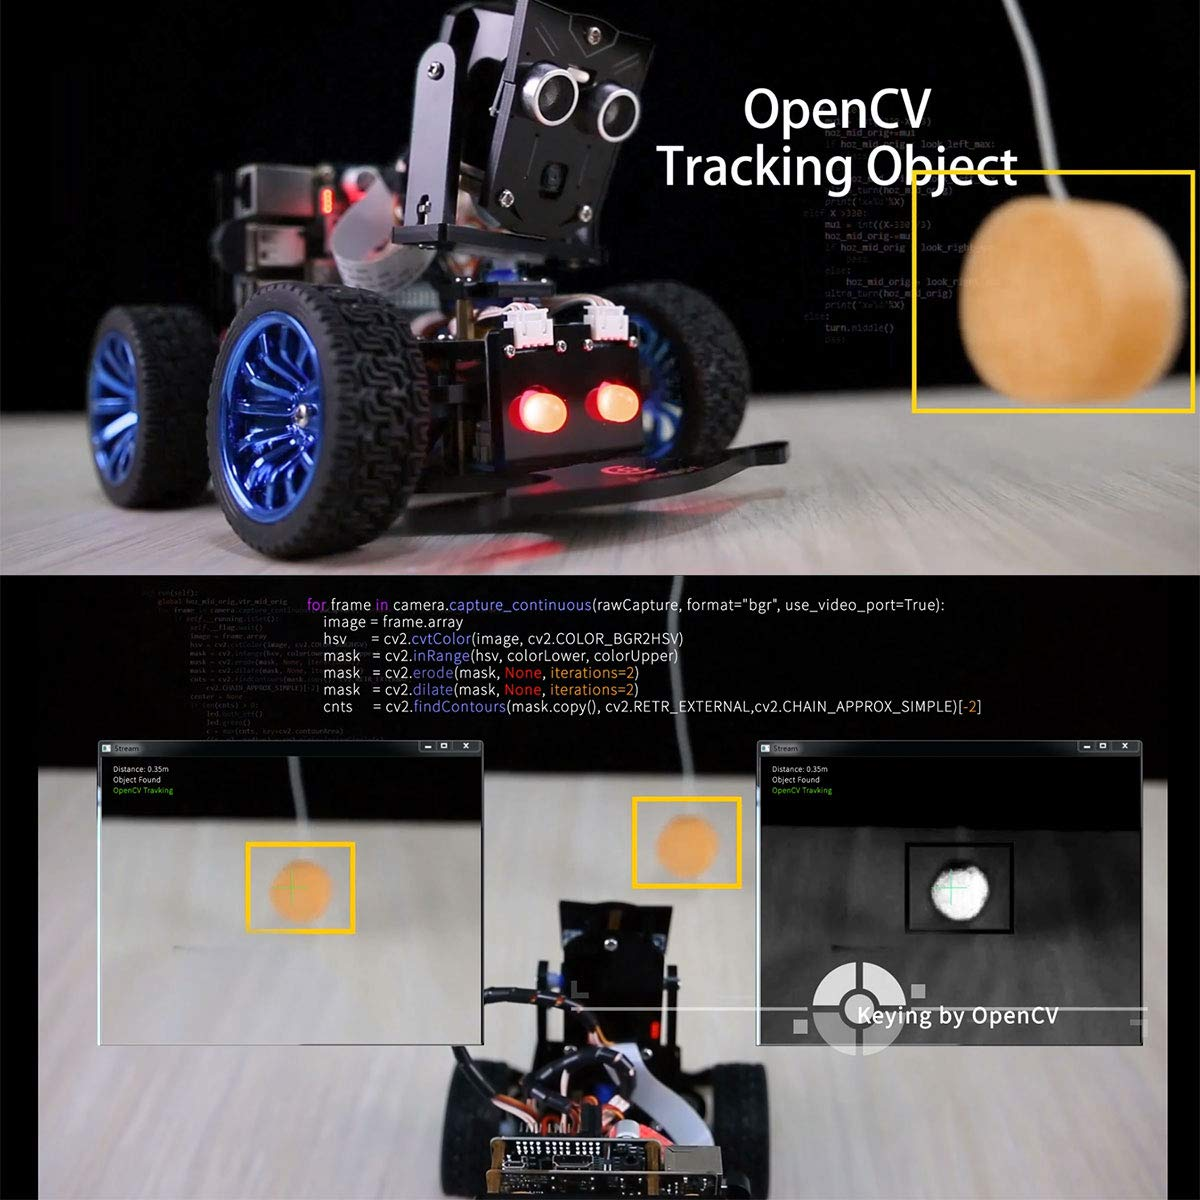 Adeept Mars Rover PiCar-B WiFi Smart Robot Car Kit for Raspberry Pi 3 Model B+/B/2B, Speech Recognition, OpenCV Target Tracking, Video Transmission, STEM Educational Robot with PDF Instructions by Adeept (Image #2)